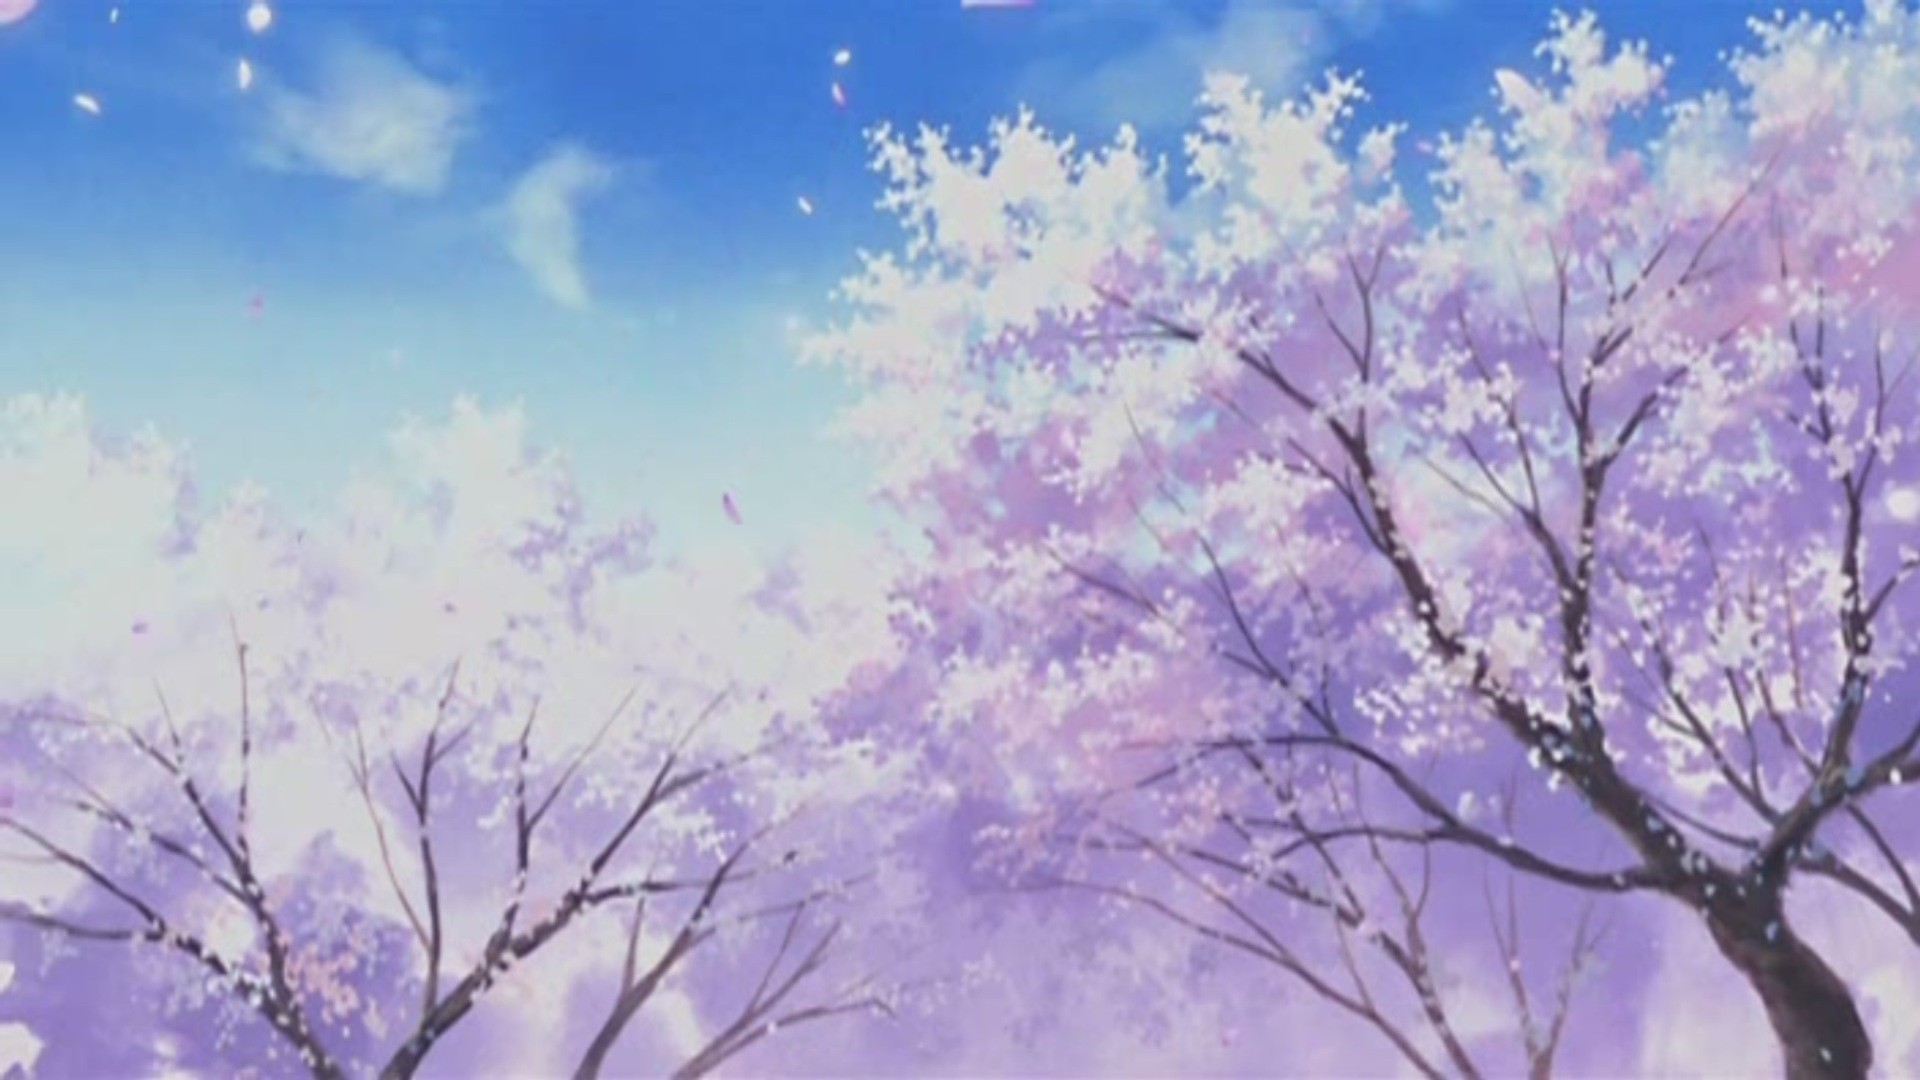 Pastel Aesthetic Anime Cherry Blossom Anime Scenery 1080x608 Wallpaper Teahub Io